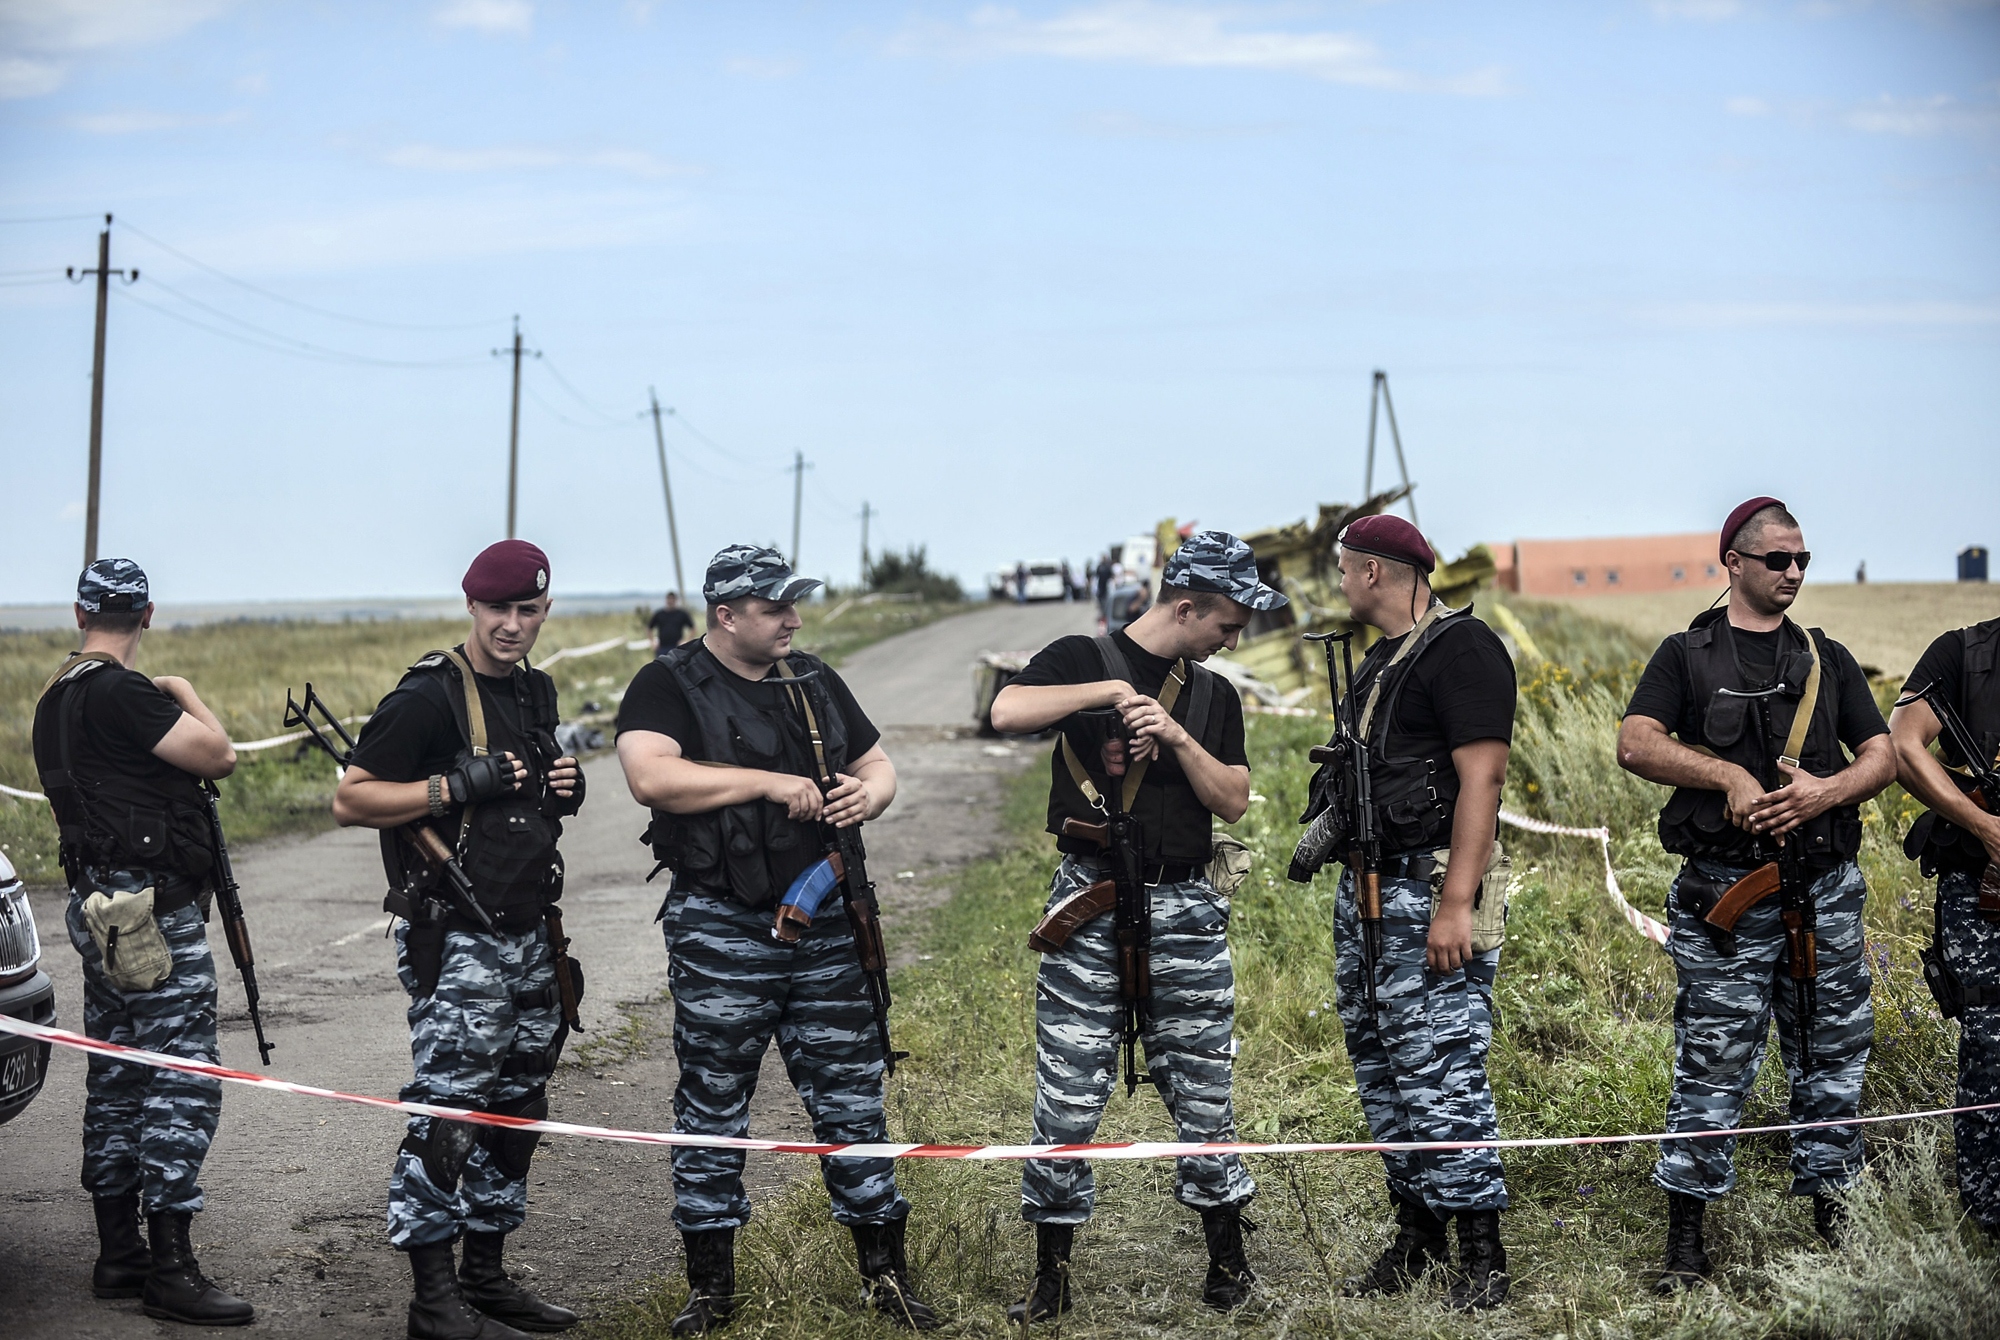 Armed pro-Russian separatists stand guard in front of the crash site of Malaysia Airlines Flight MH17, near the village of Grabove, in the region of Donetsk on July 20, 2014.